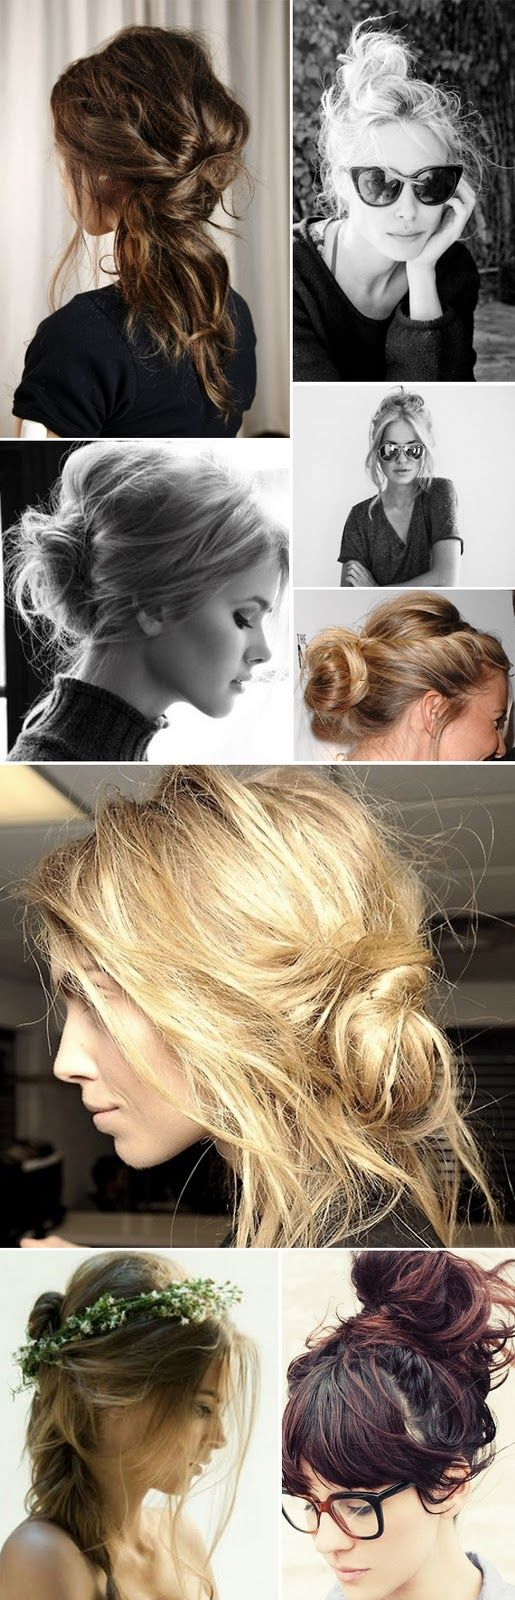 : Beaches Hair, Messy Hairstyles, Up Dos, Long Hair, Updos, Messy Buns, Big Hair, Hair Style, Messy Up Do